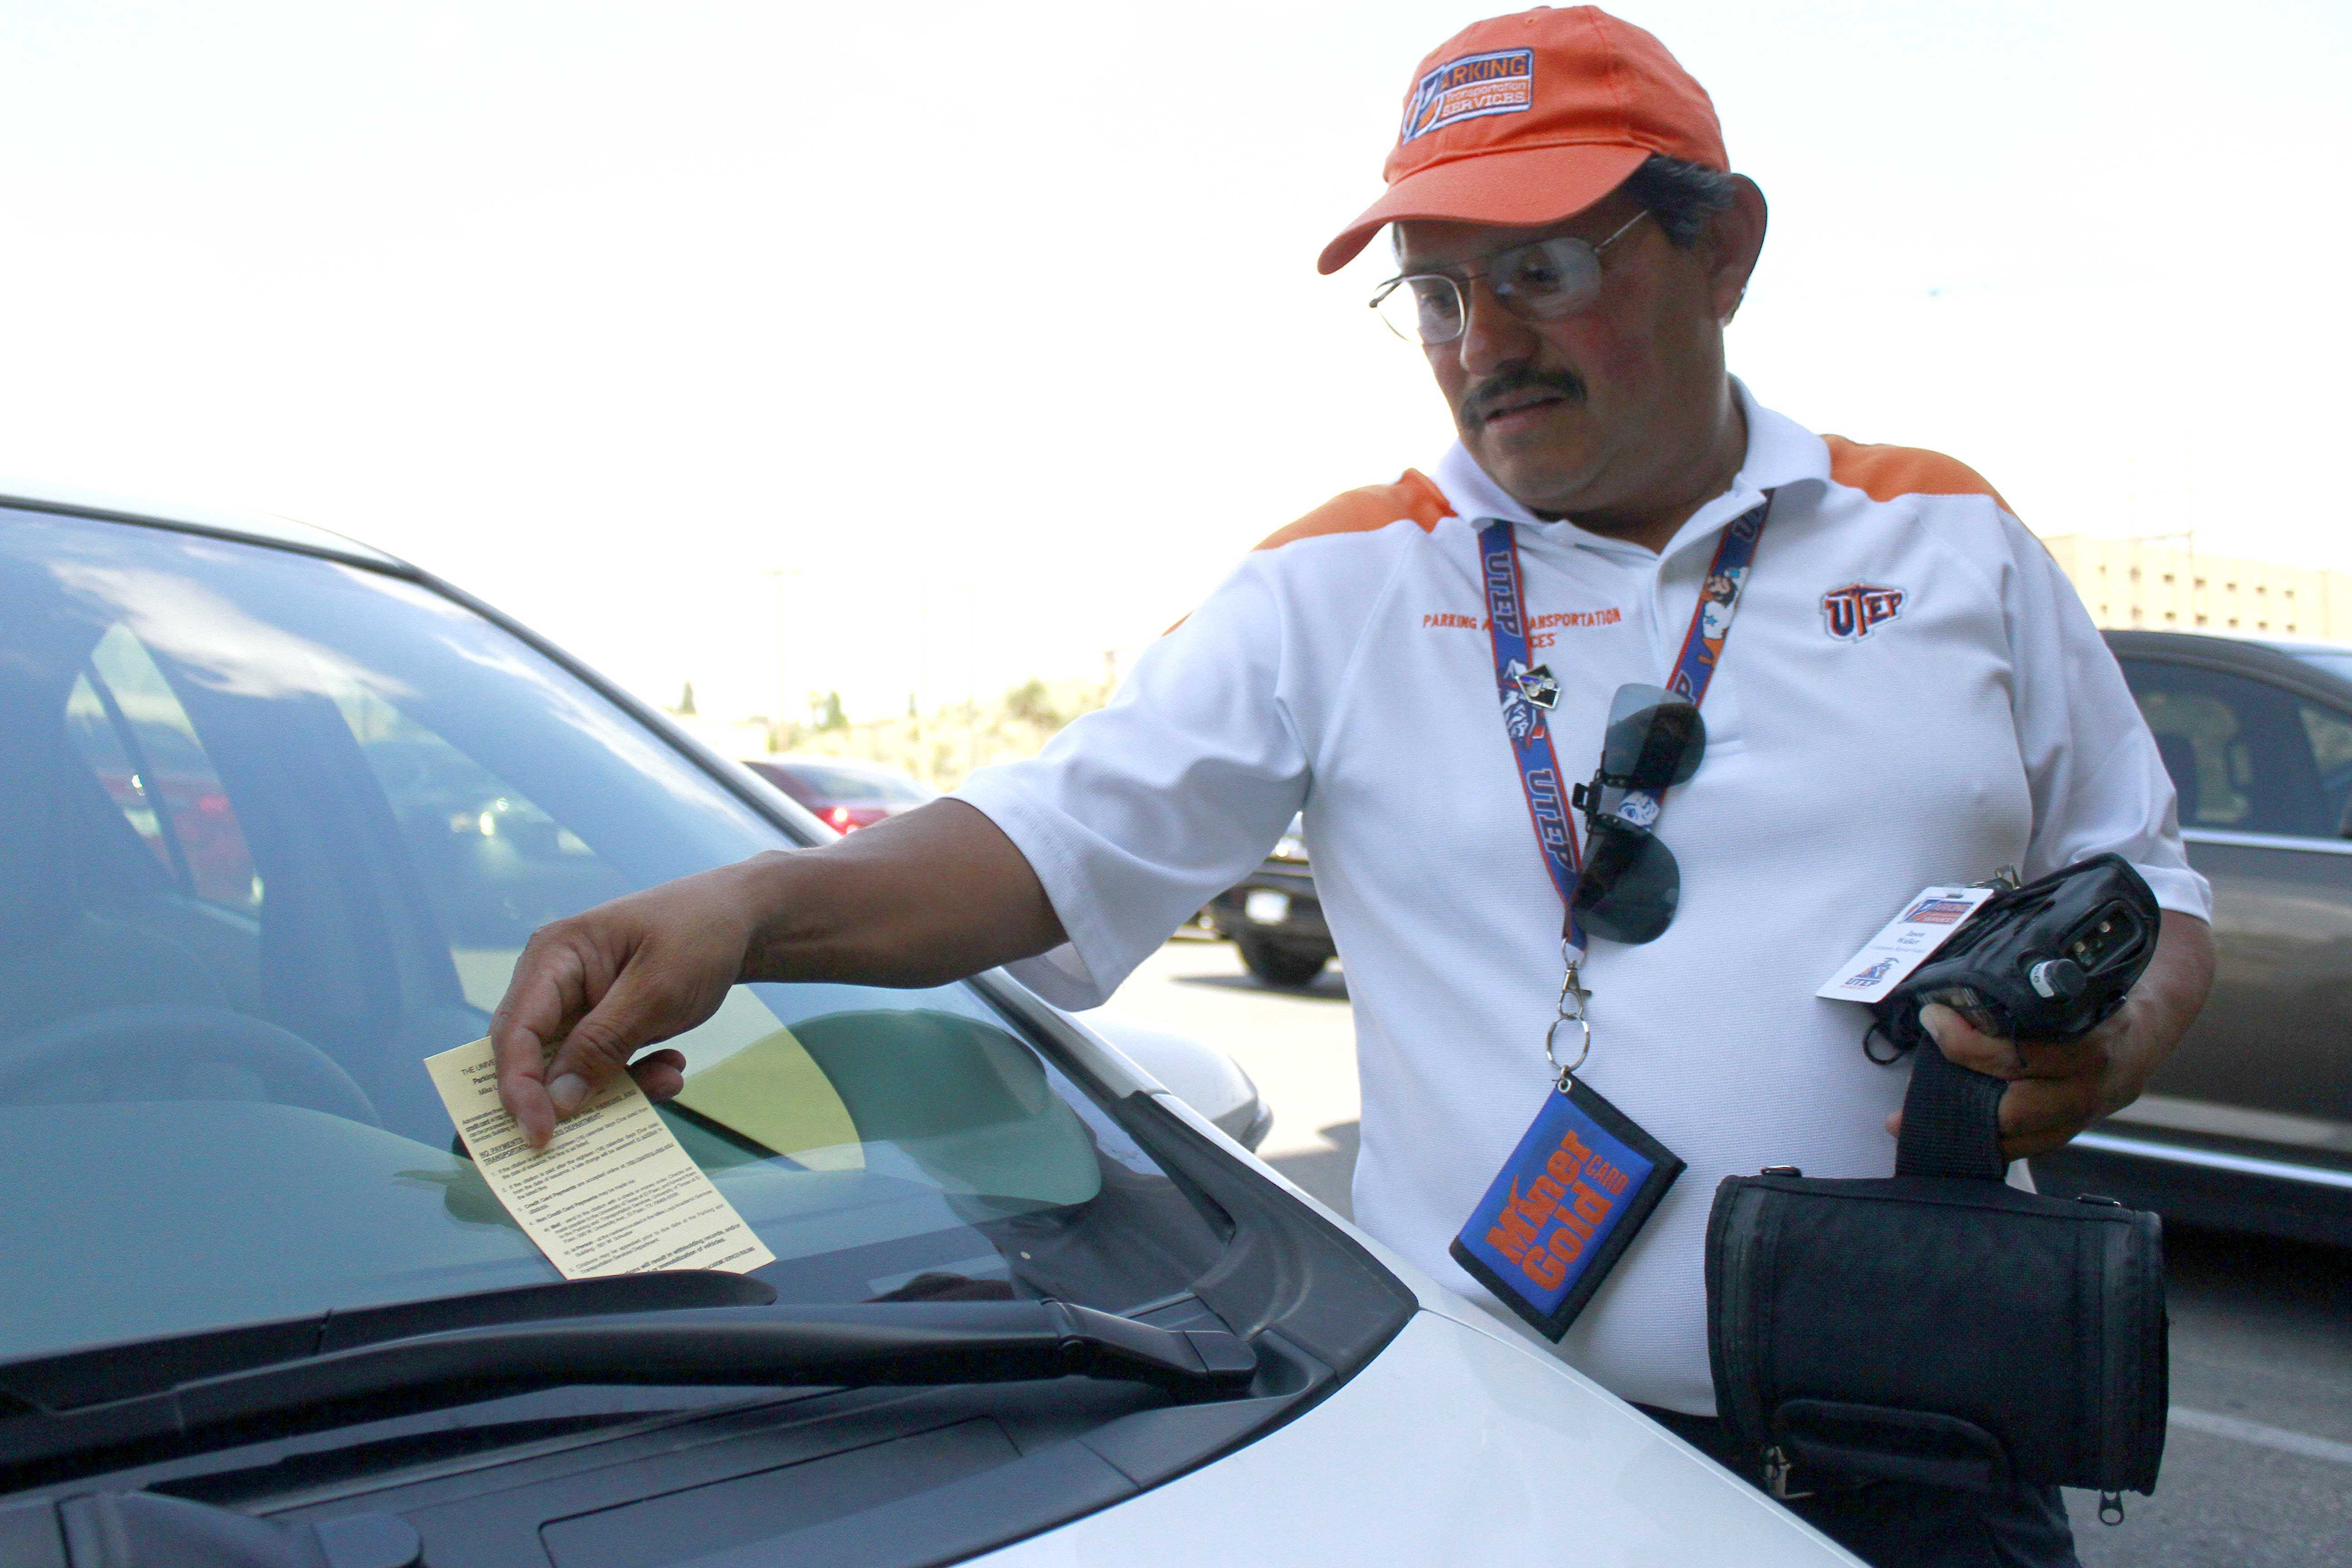 A UTEP Parking and Transportation Services employee places a citation on an illegally parked vehicle.